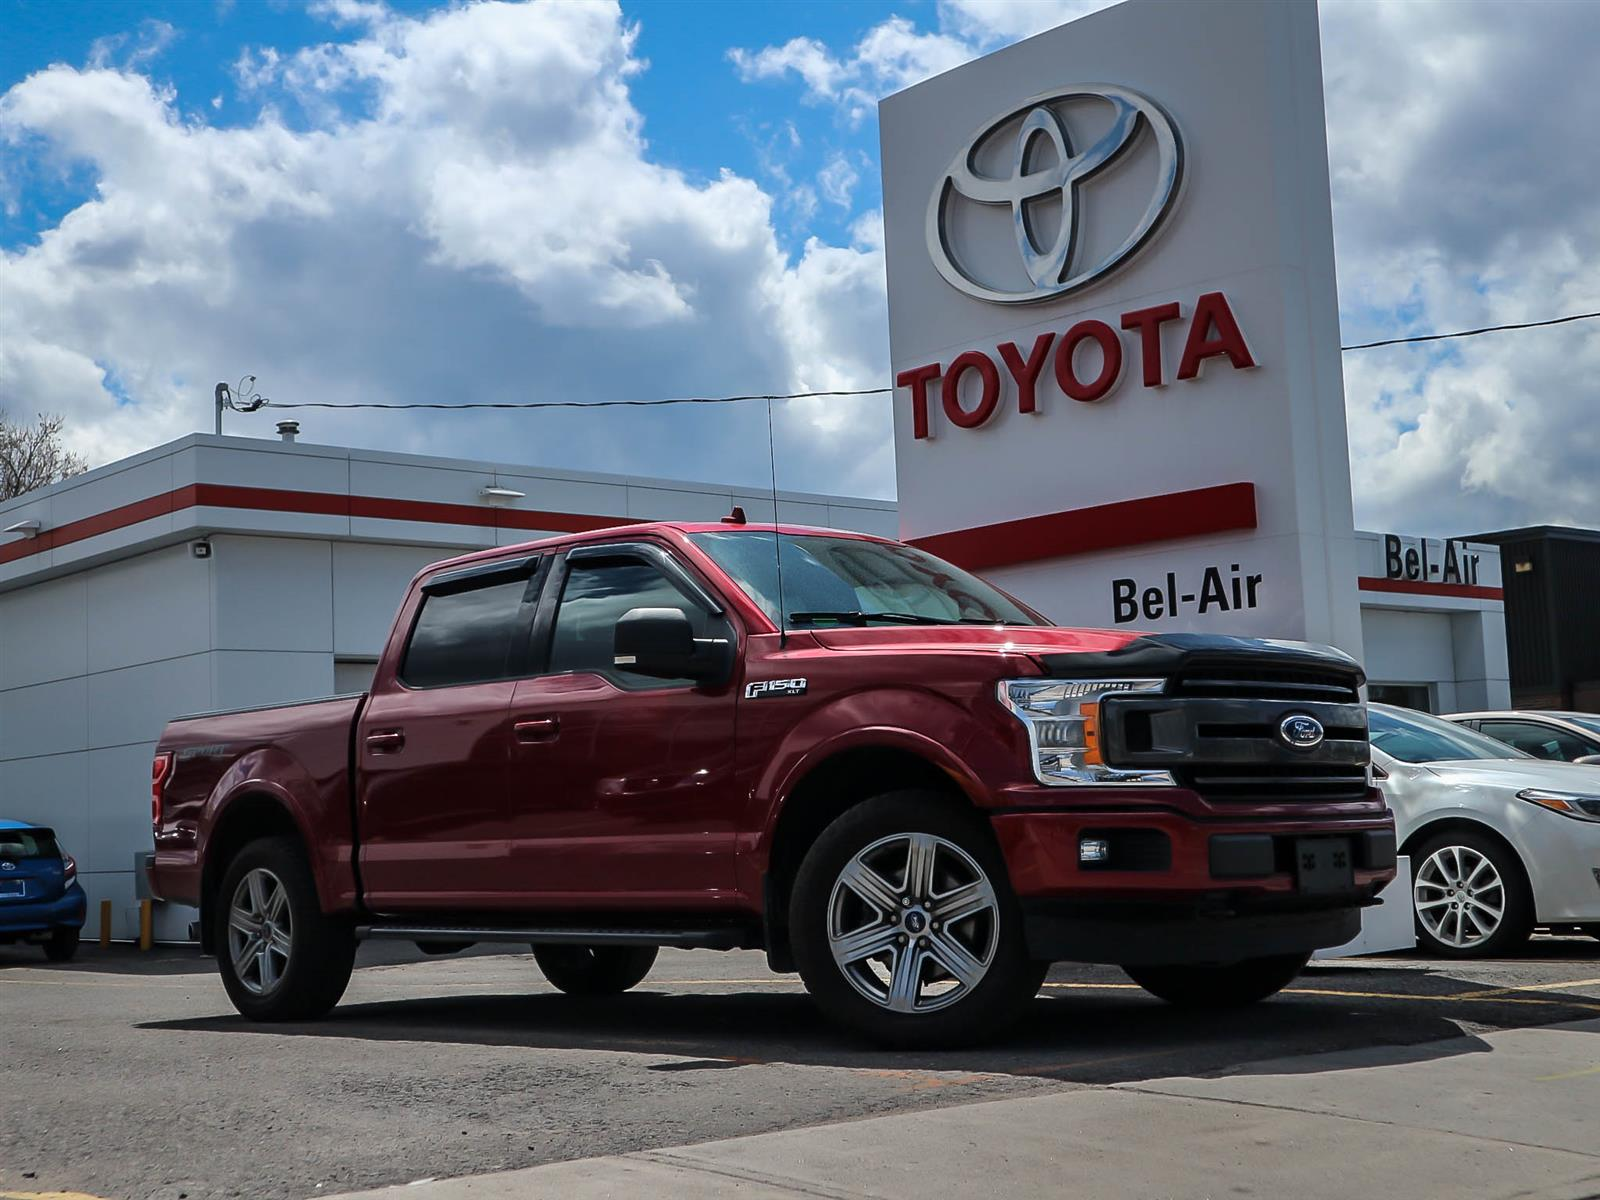 2018 Ford F-150 at Bel-Air Toyota